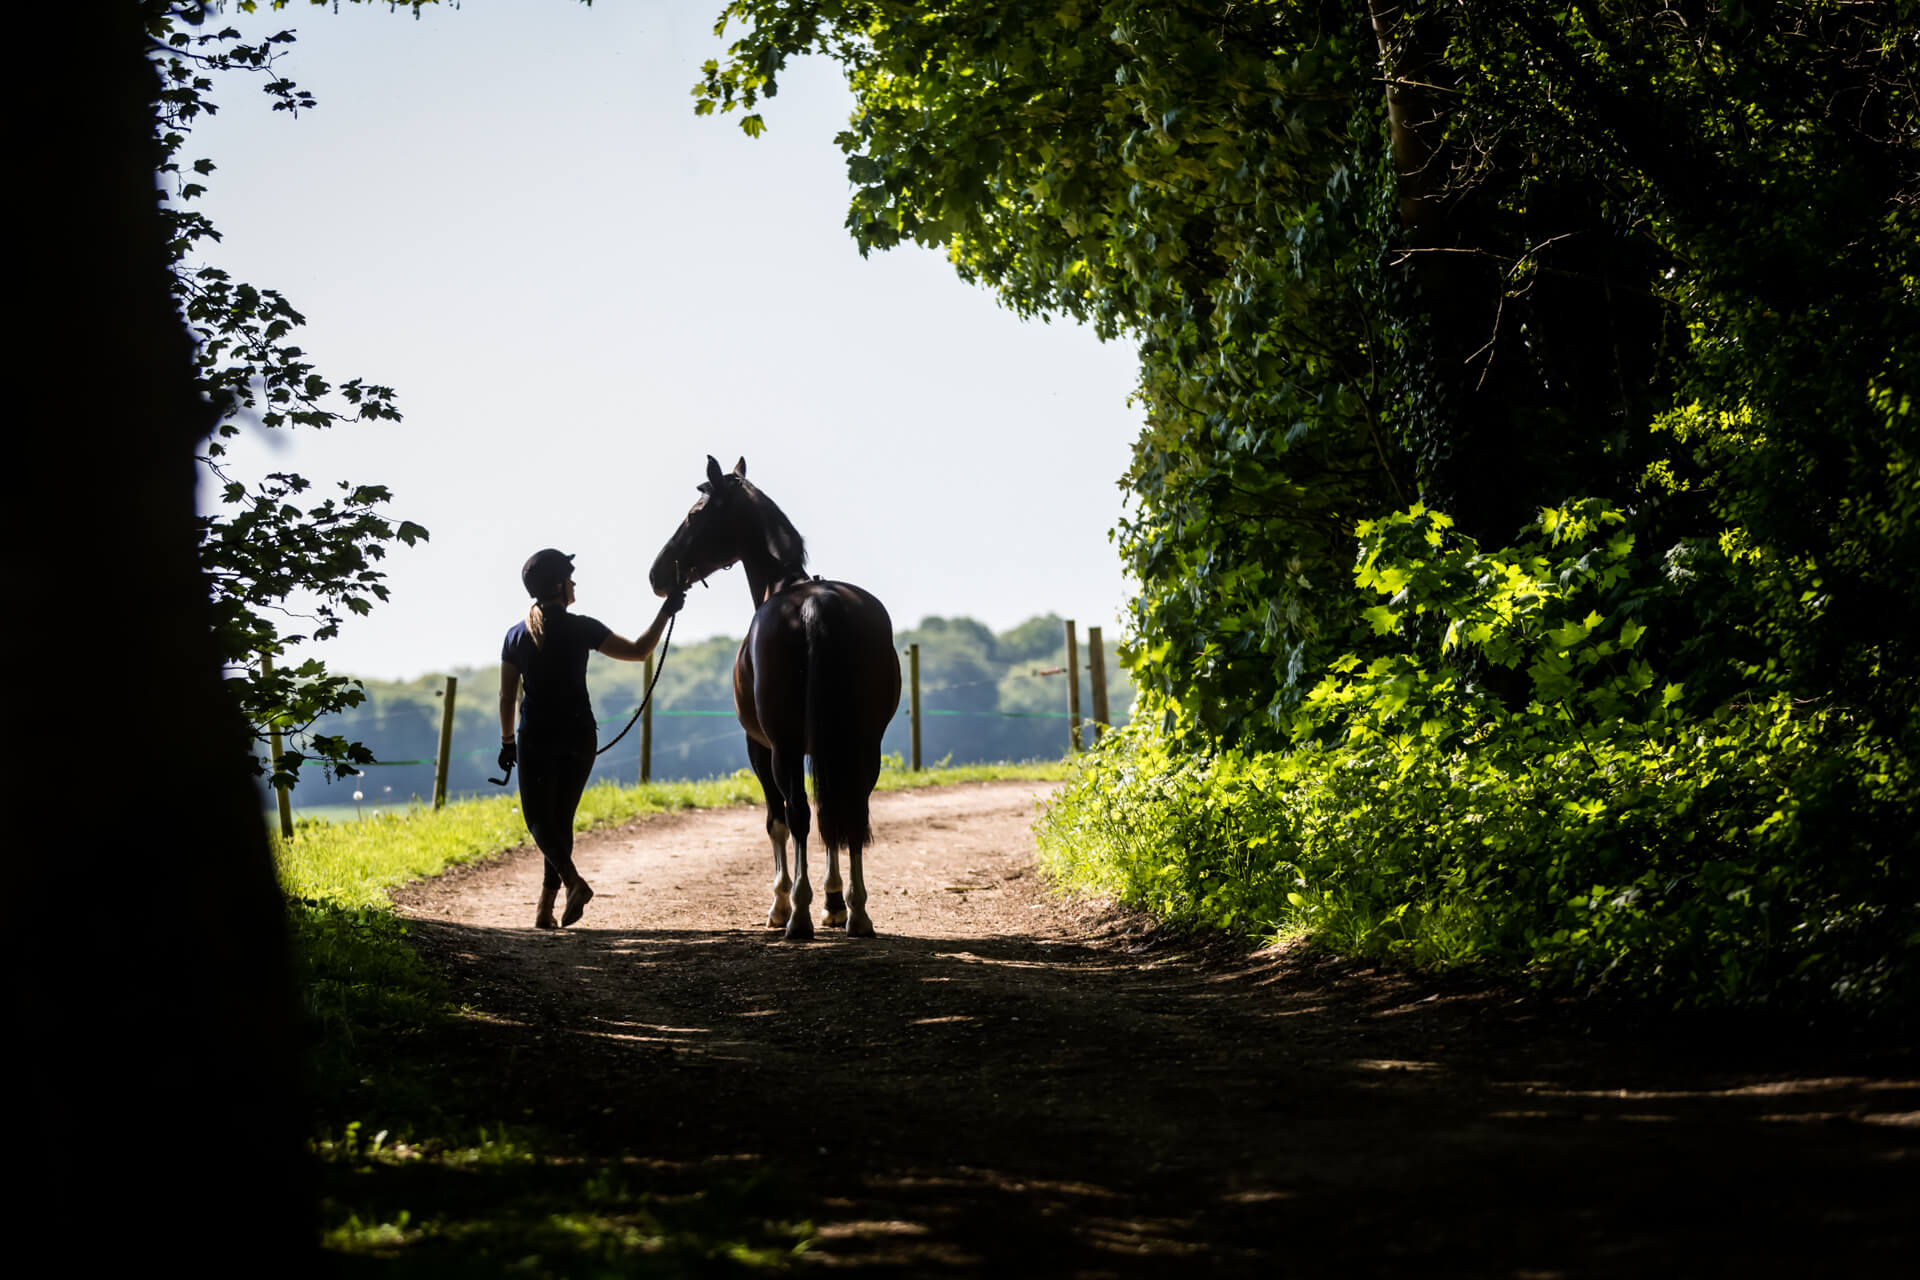 horse and rider walking together along a country path